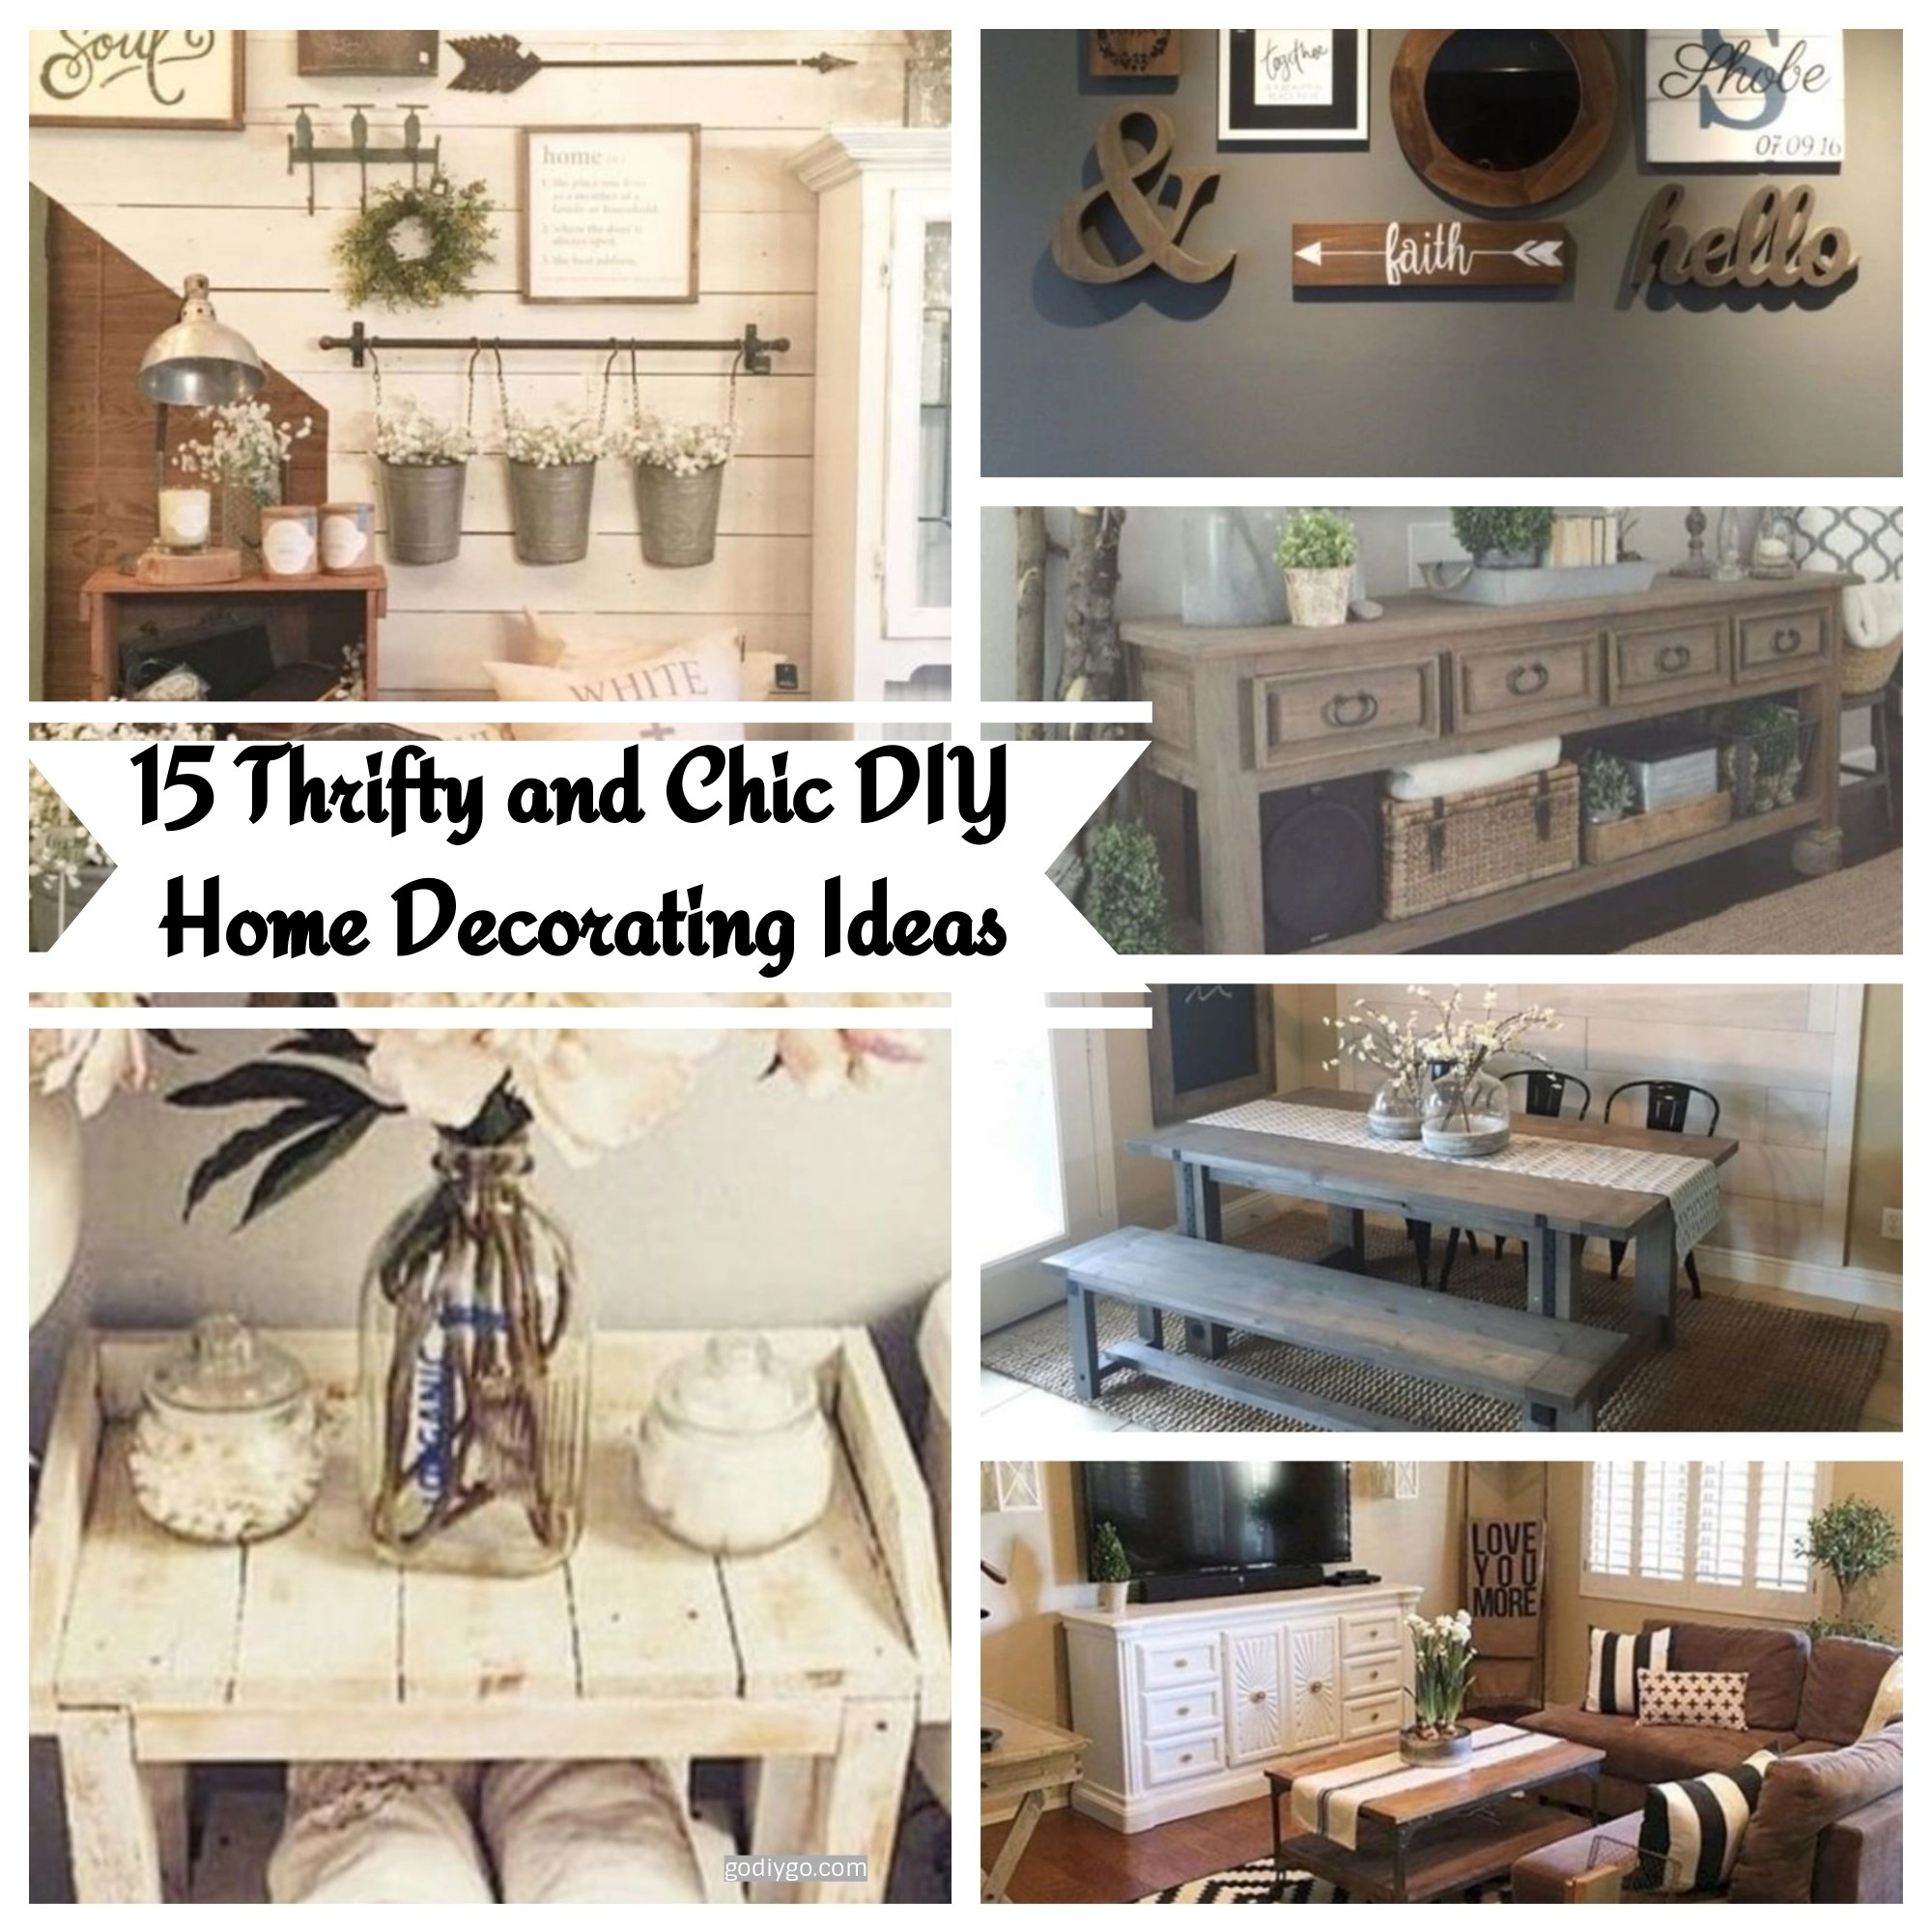 15 Thrifty and Chic DIY Home Decorating Ideas - GODIYGO.COM